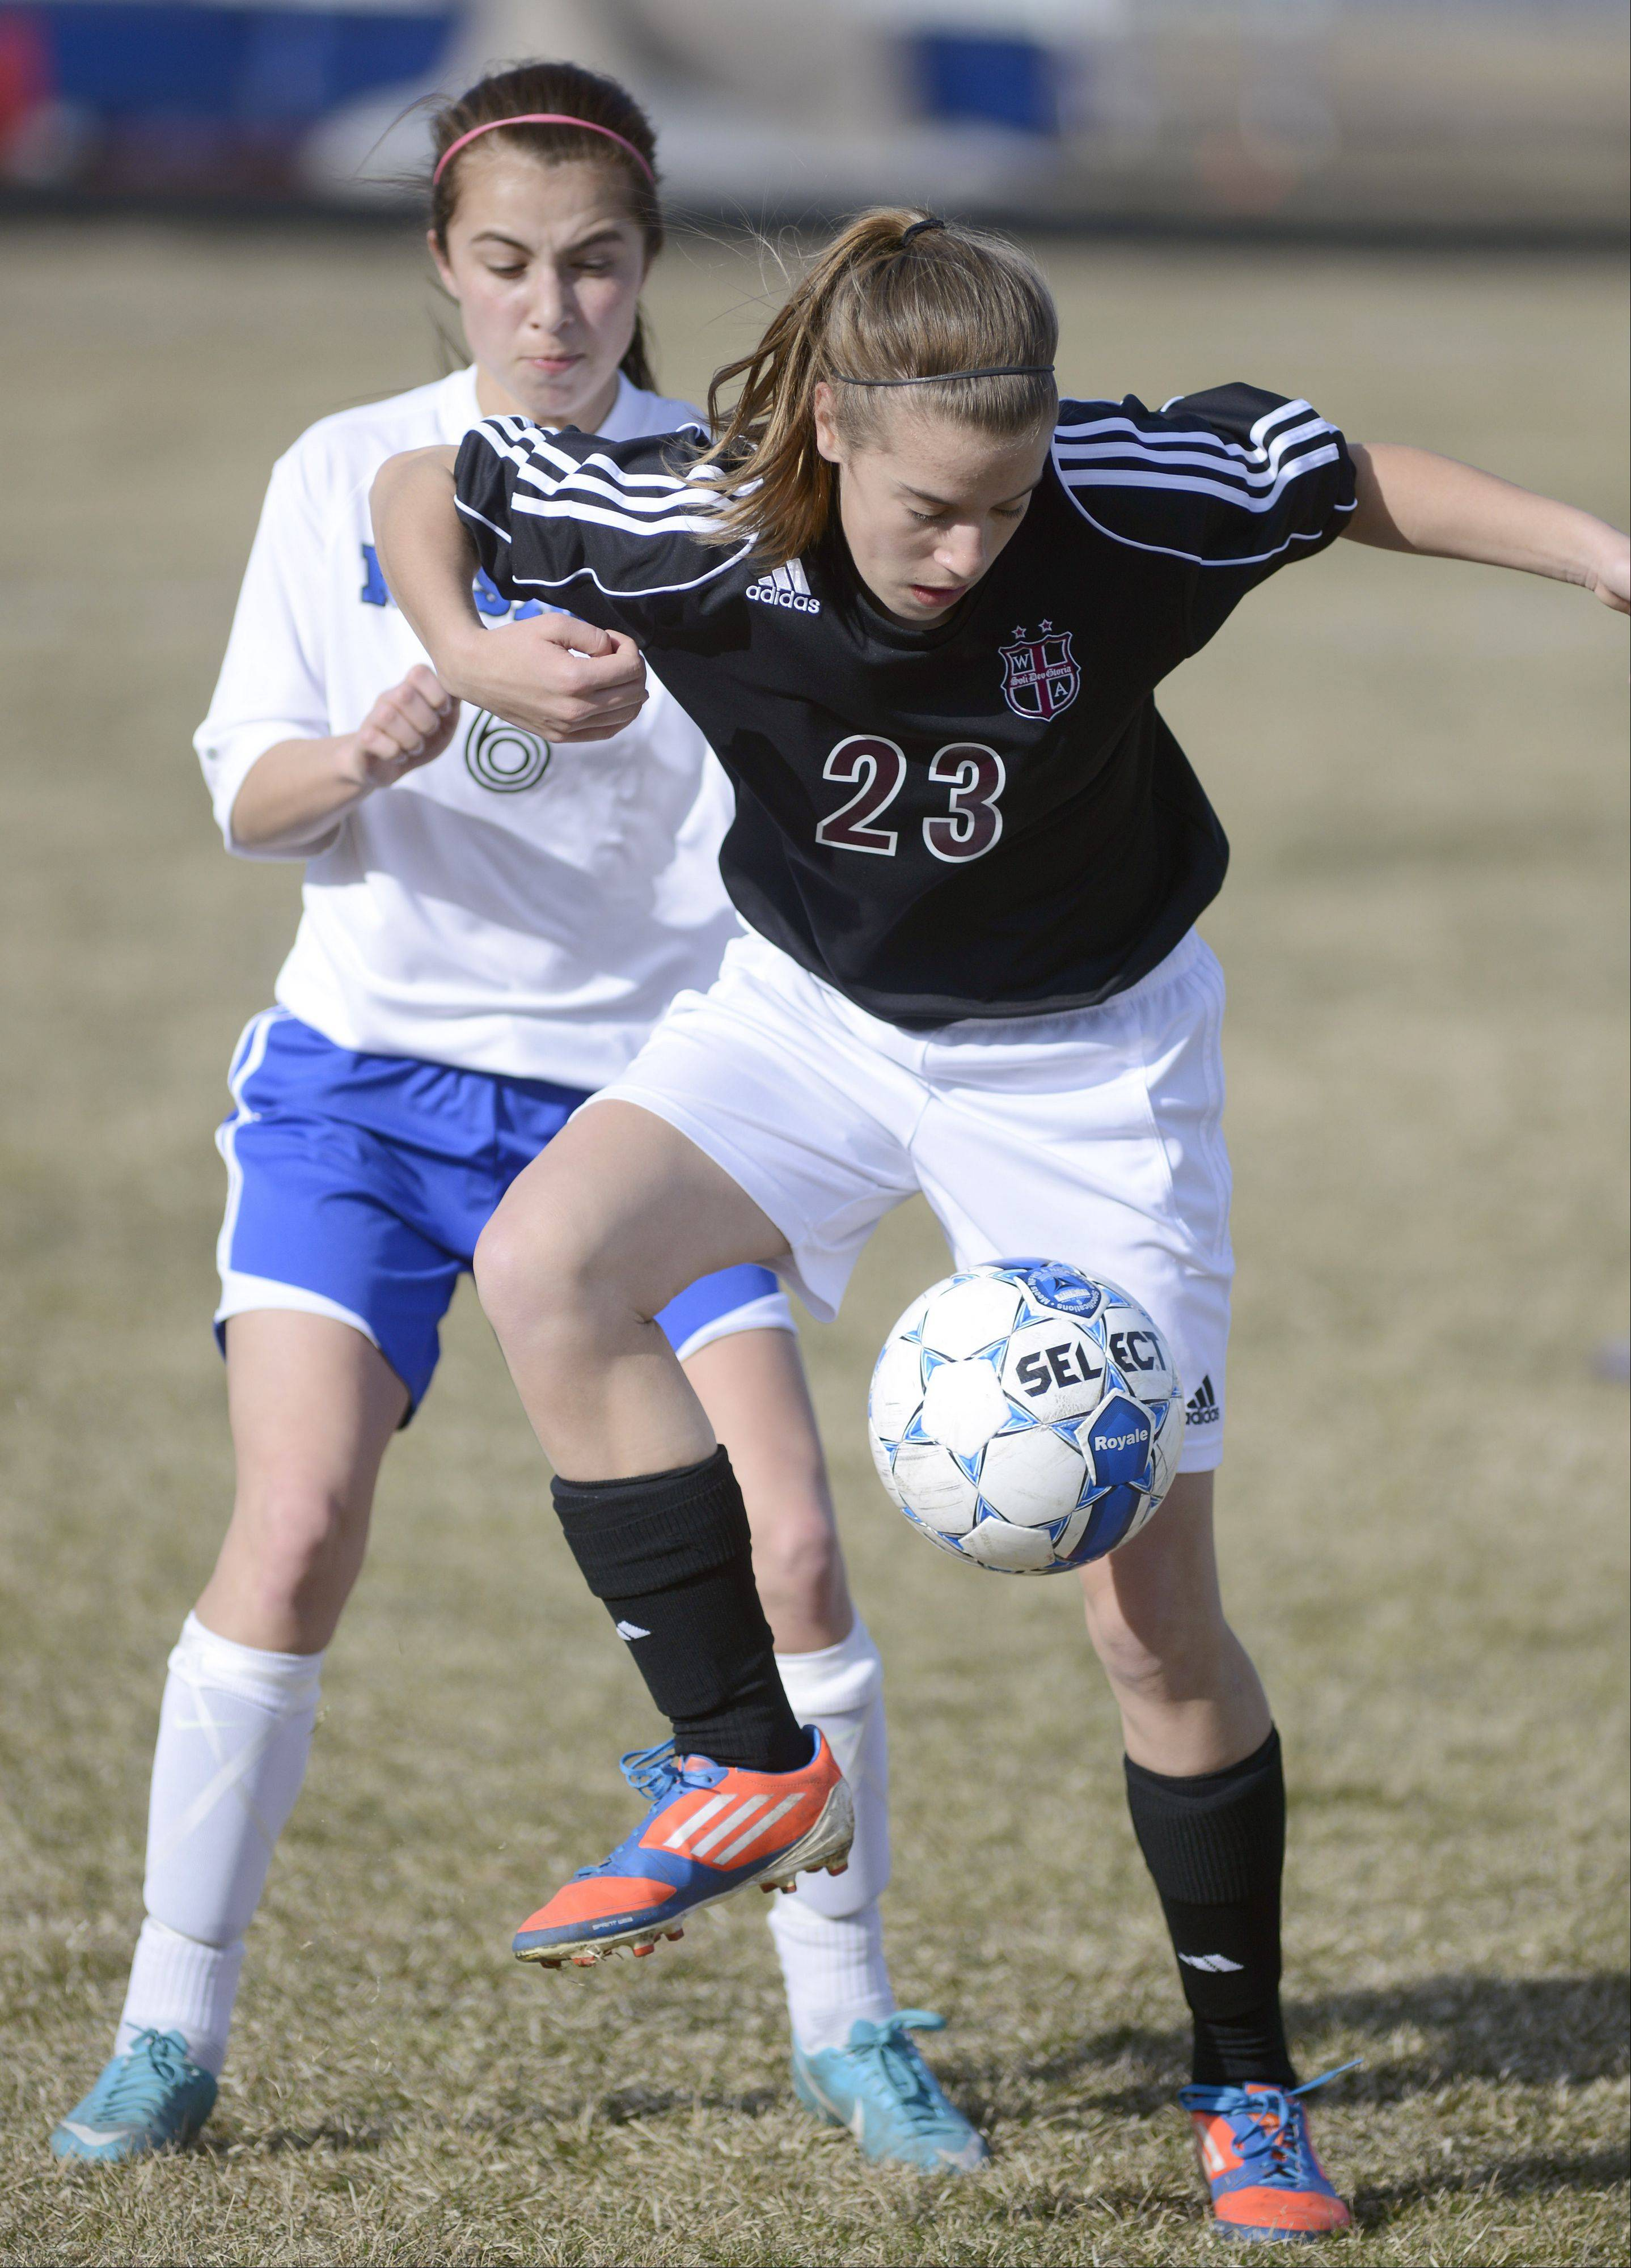 Wheaton Academy's Jamie Netzley keeps Rosary's Lizzie Kelly from the ball in the first half on Wednesday, April 3.